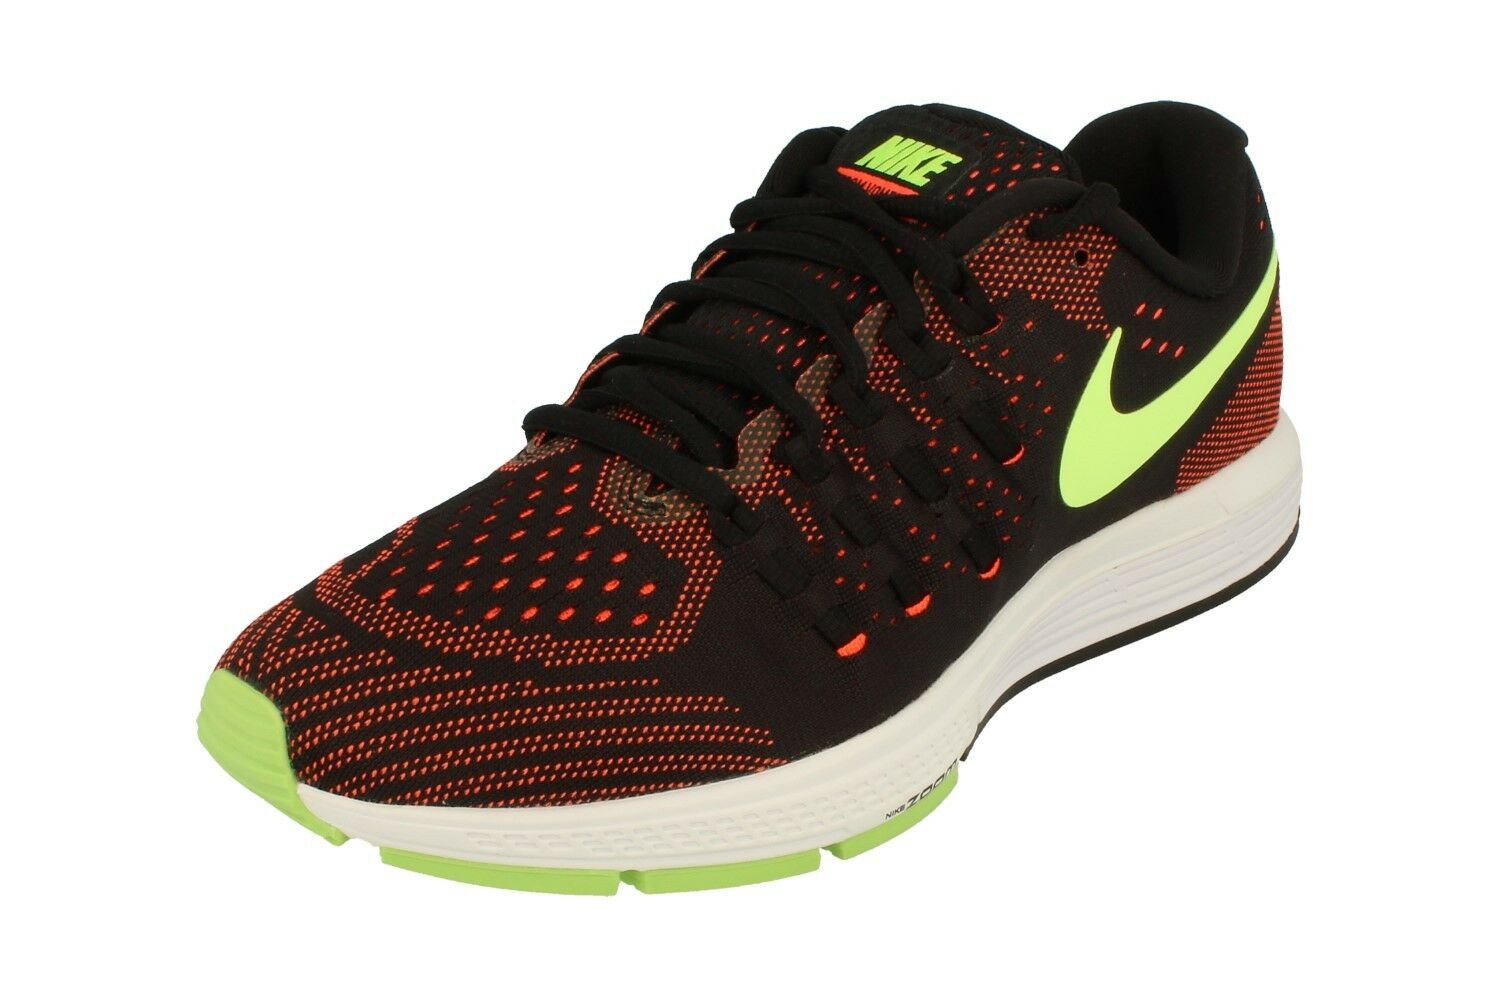 Nike Chaussure Air Zoom Vomero 11 Chaussure Nike de Course pour Homme 818099 Baskets 007 89a1a6